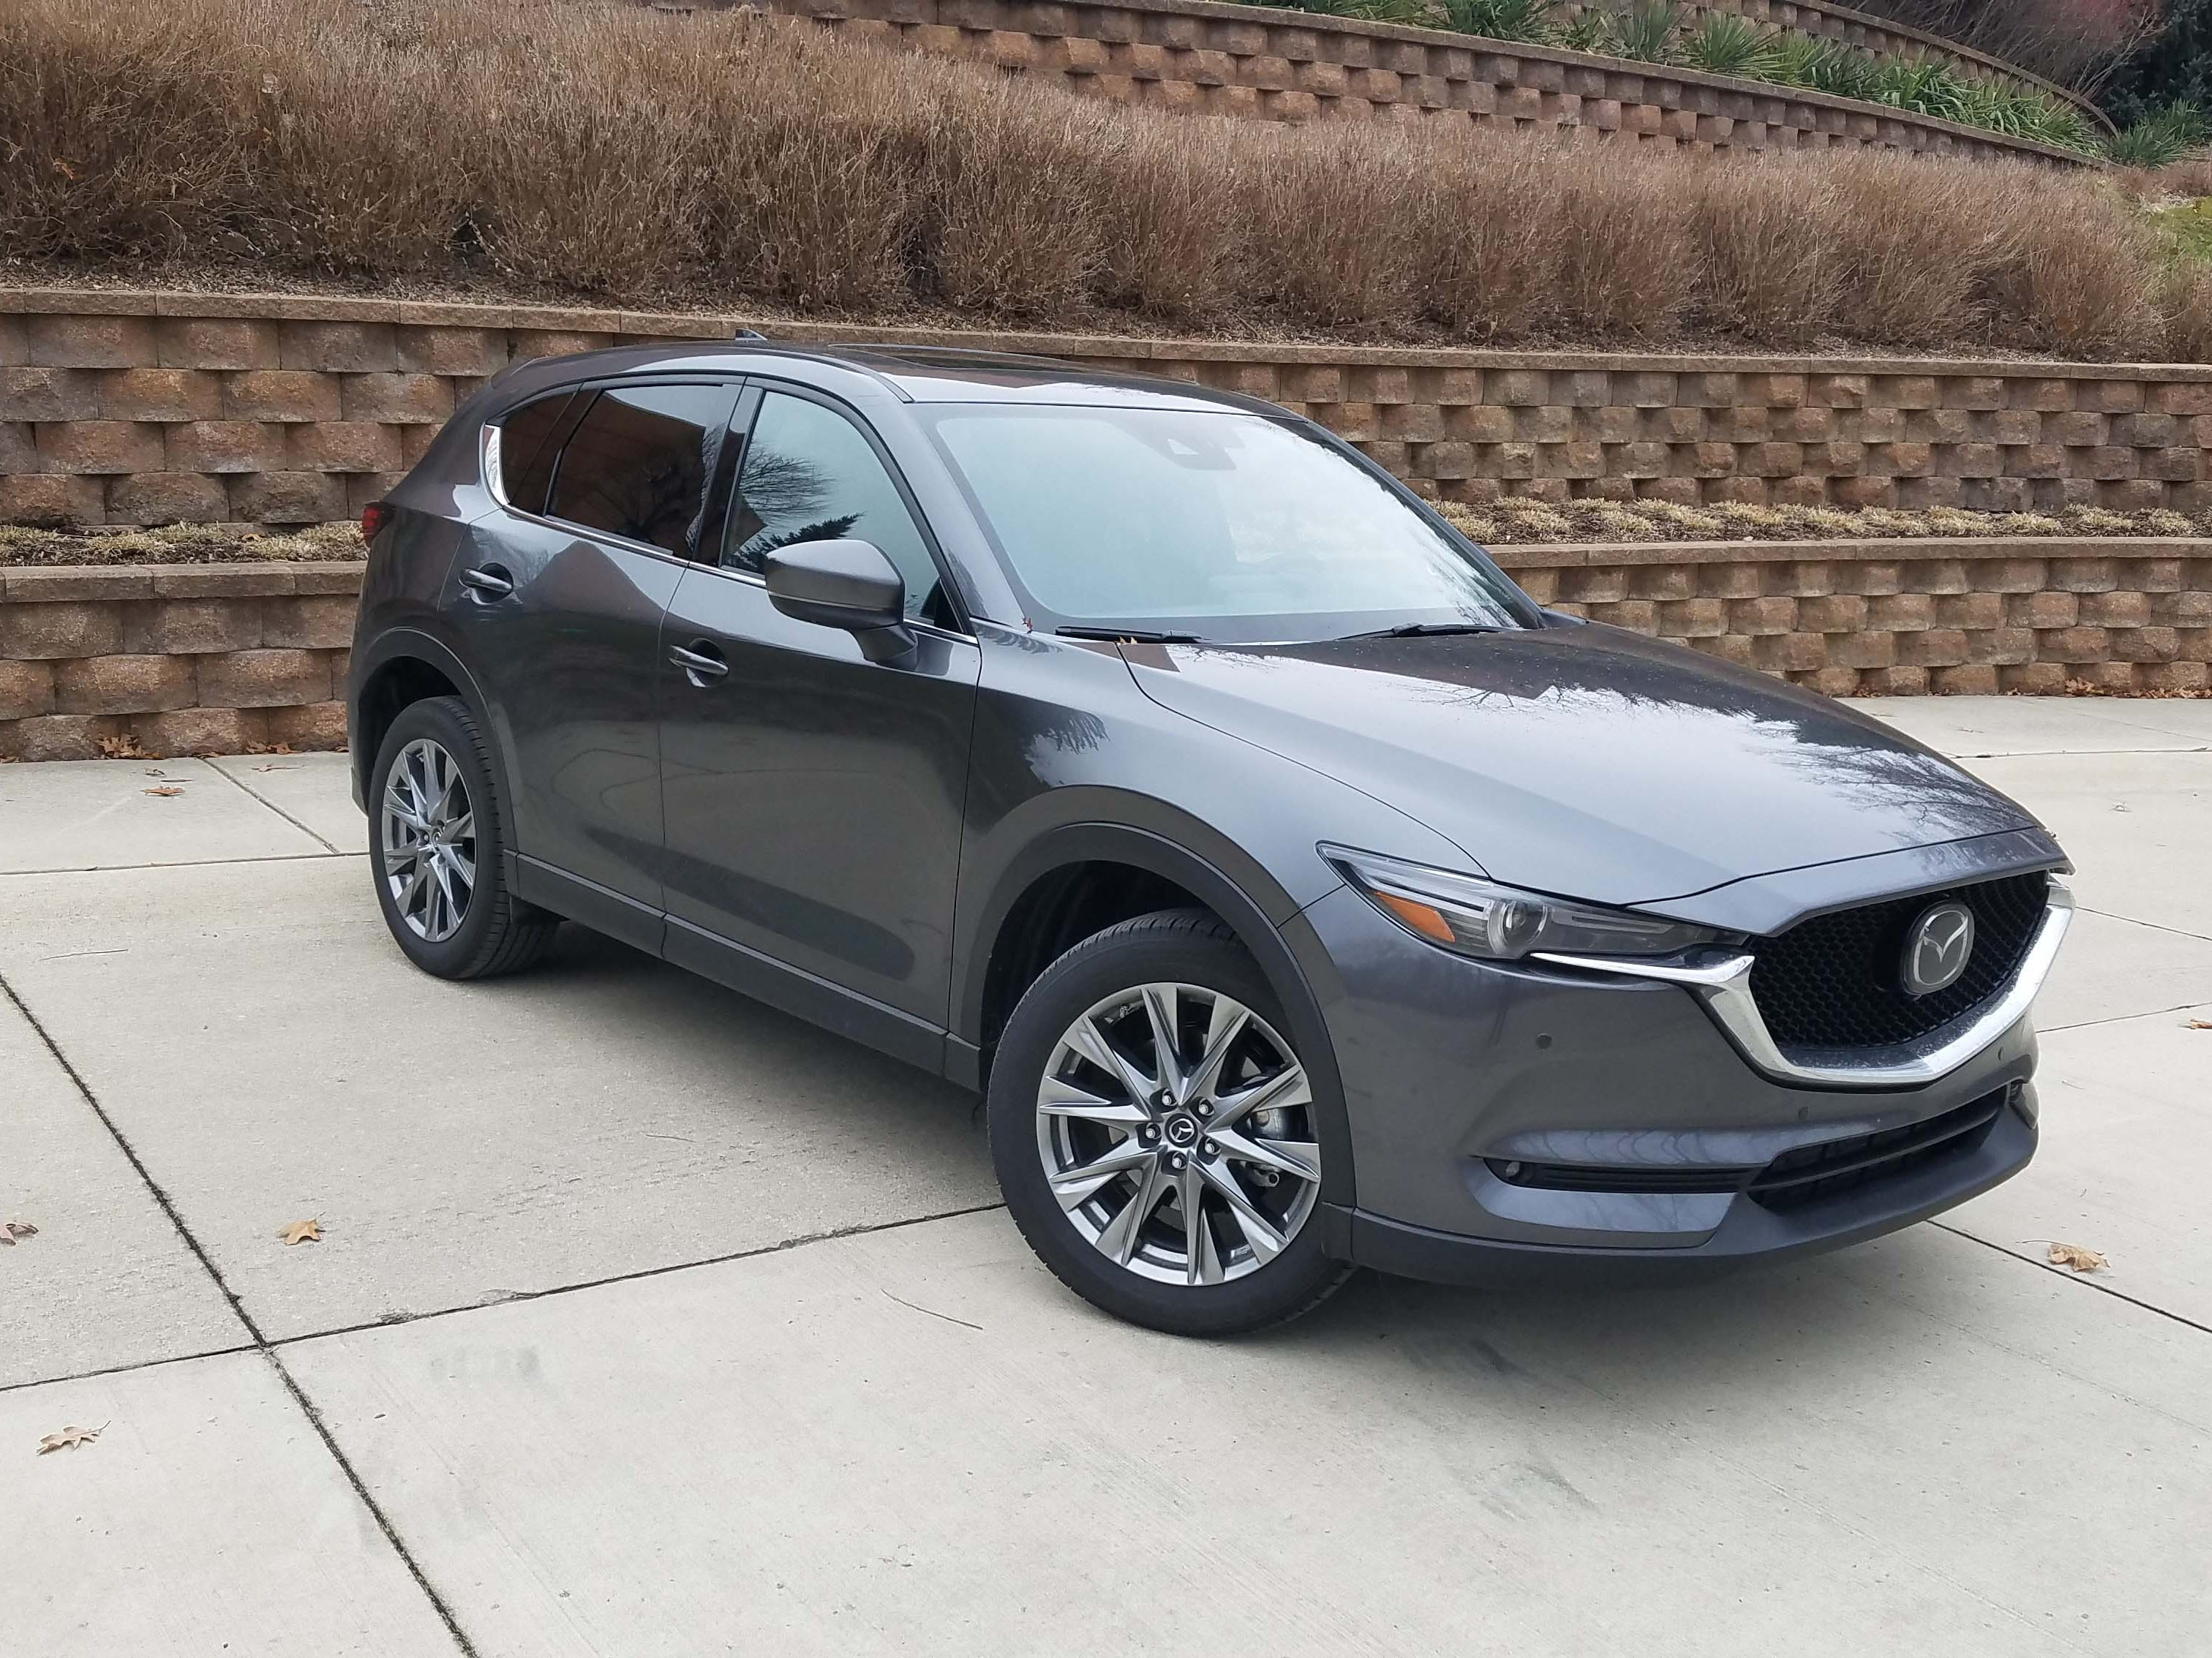 Now that's an SUV. The Mazda CX-5 Signature sports sleek, swept lines — a welcome look in the age of five-door, hatchback SUVs.